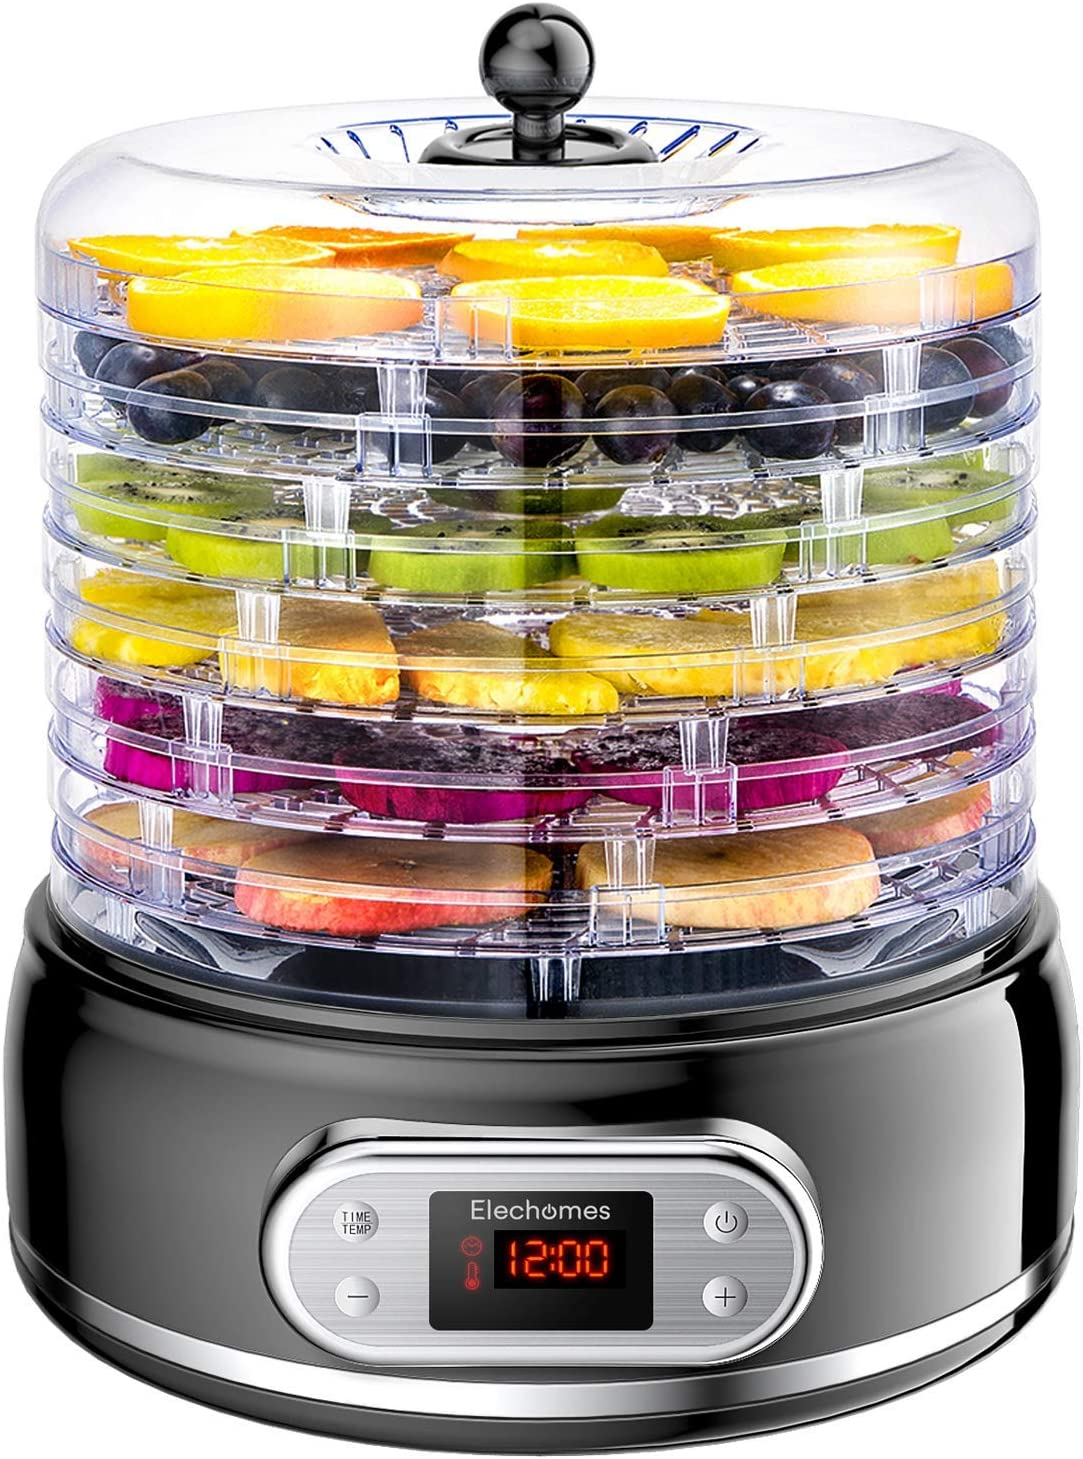 Elechomes Food Dehydrator with Fruit Roll Sheets, 6 Trays Fruit Vegetable Nuts Dryer, Digital Thermostat Time and Temperature Preset Food Preserver, Beef Jerky Maker, BPA-Free (Renewed)